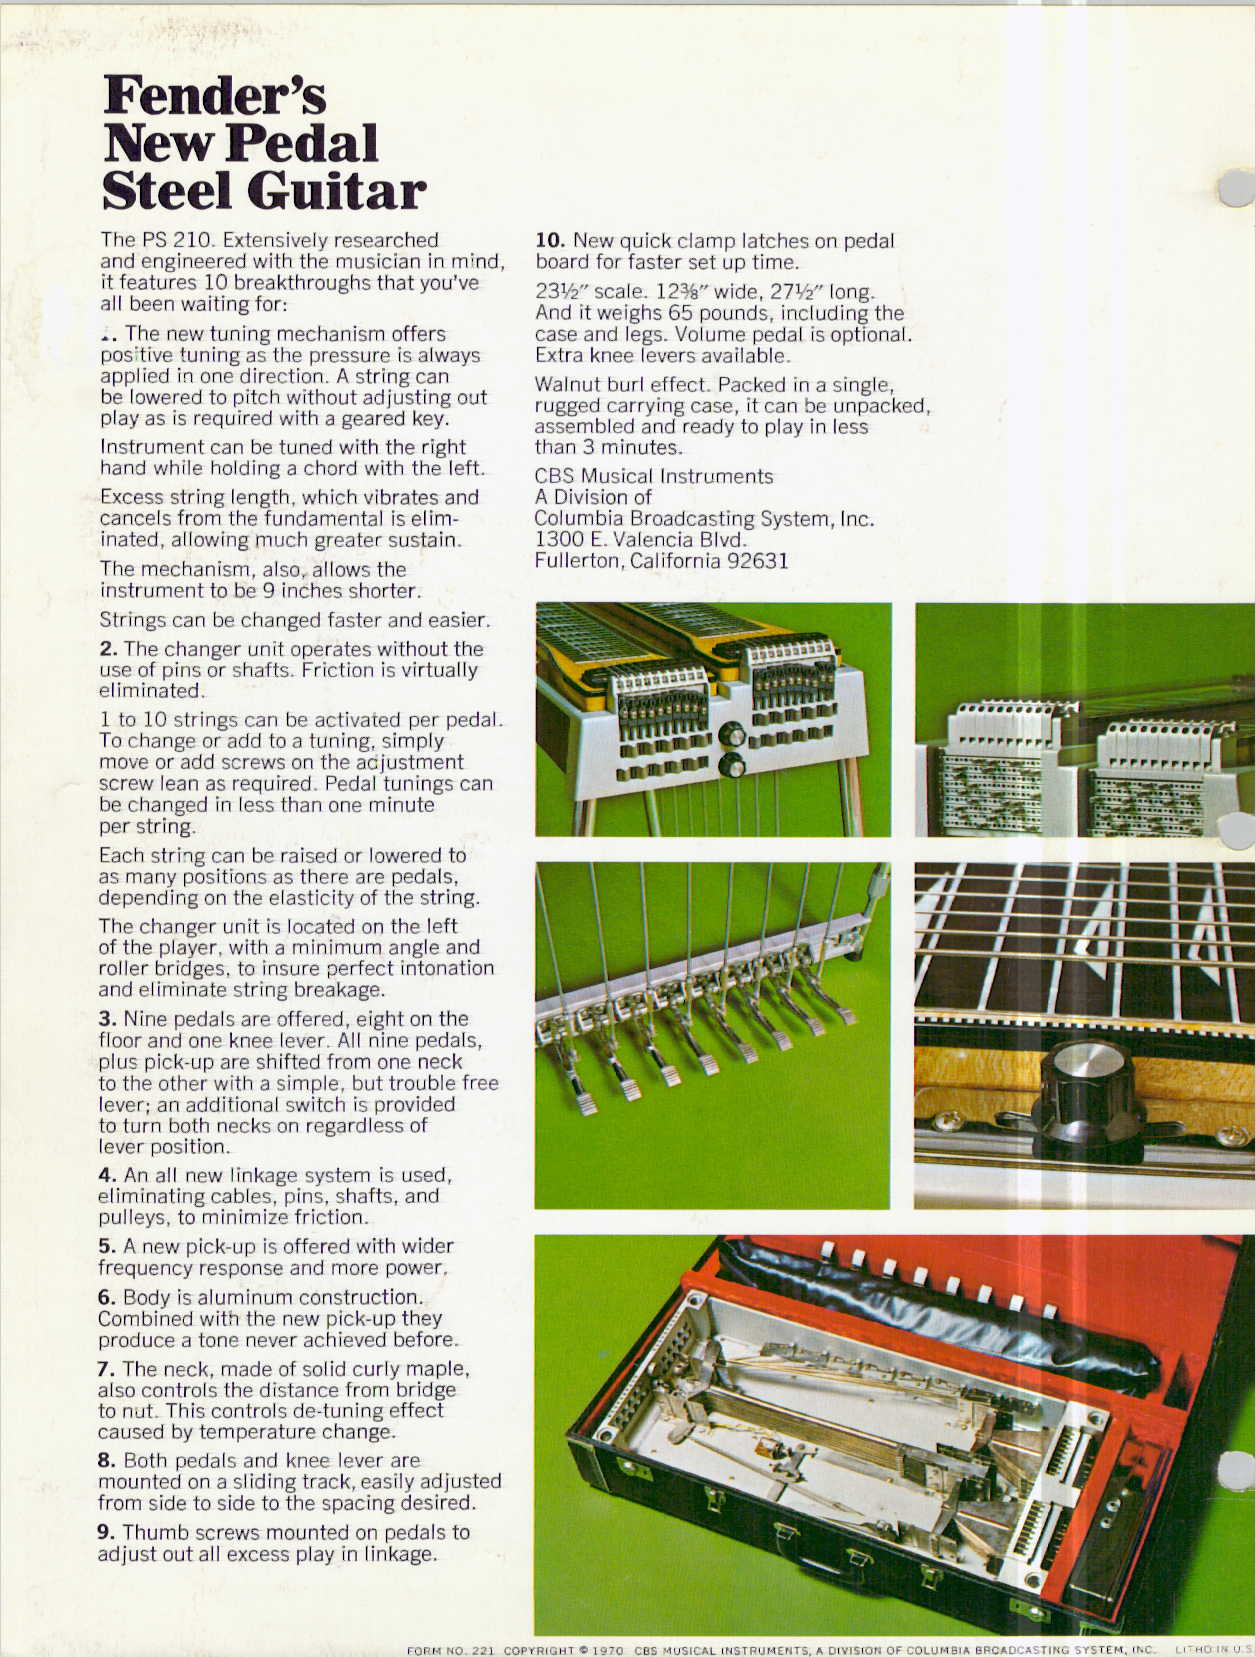 PSG Fender Fender PS 210 Brochure